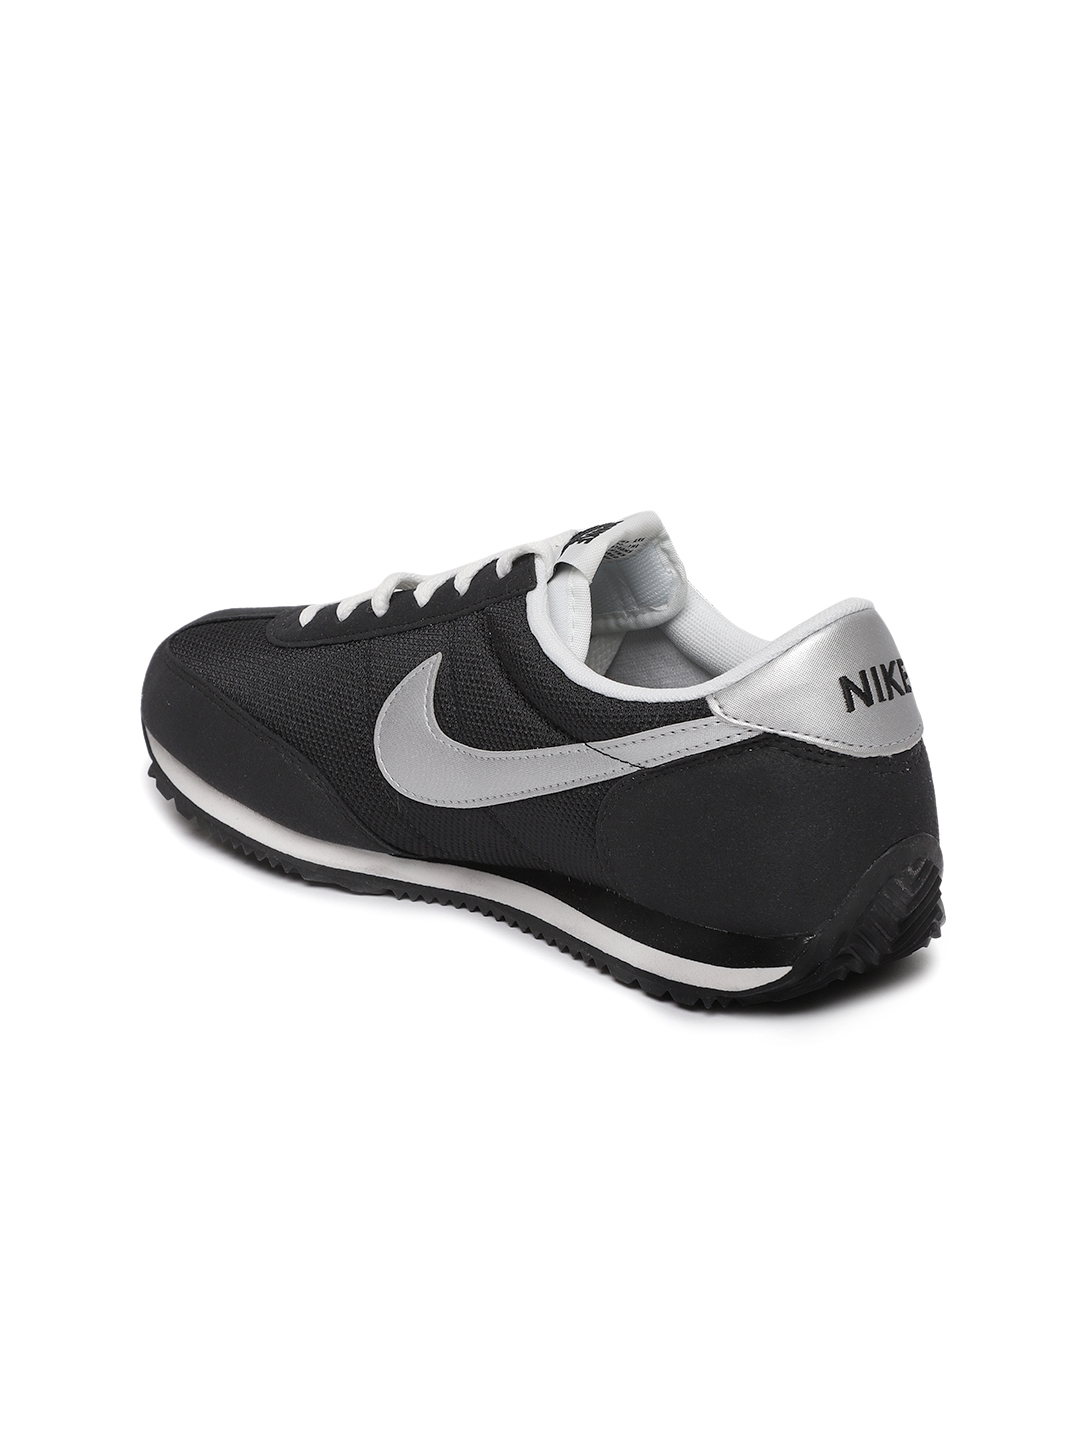 official photos 4d028 9a4c8 Nike Women Black Oceania Textile Sneakers